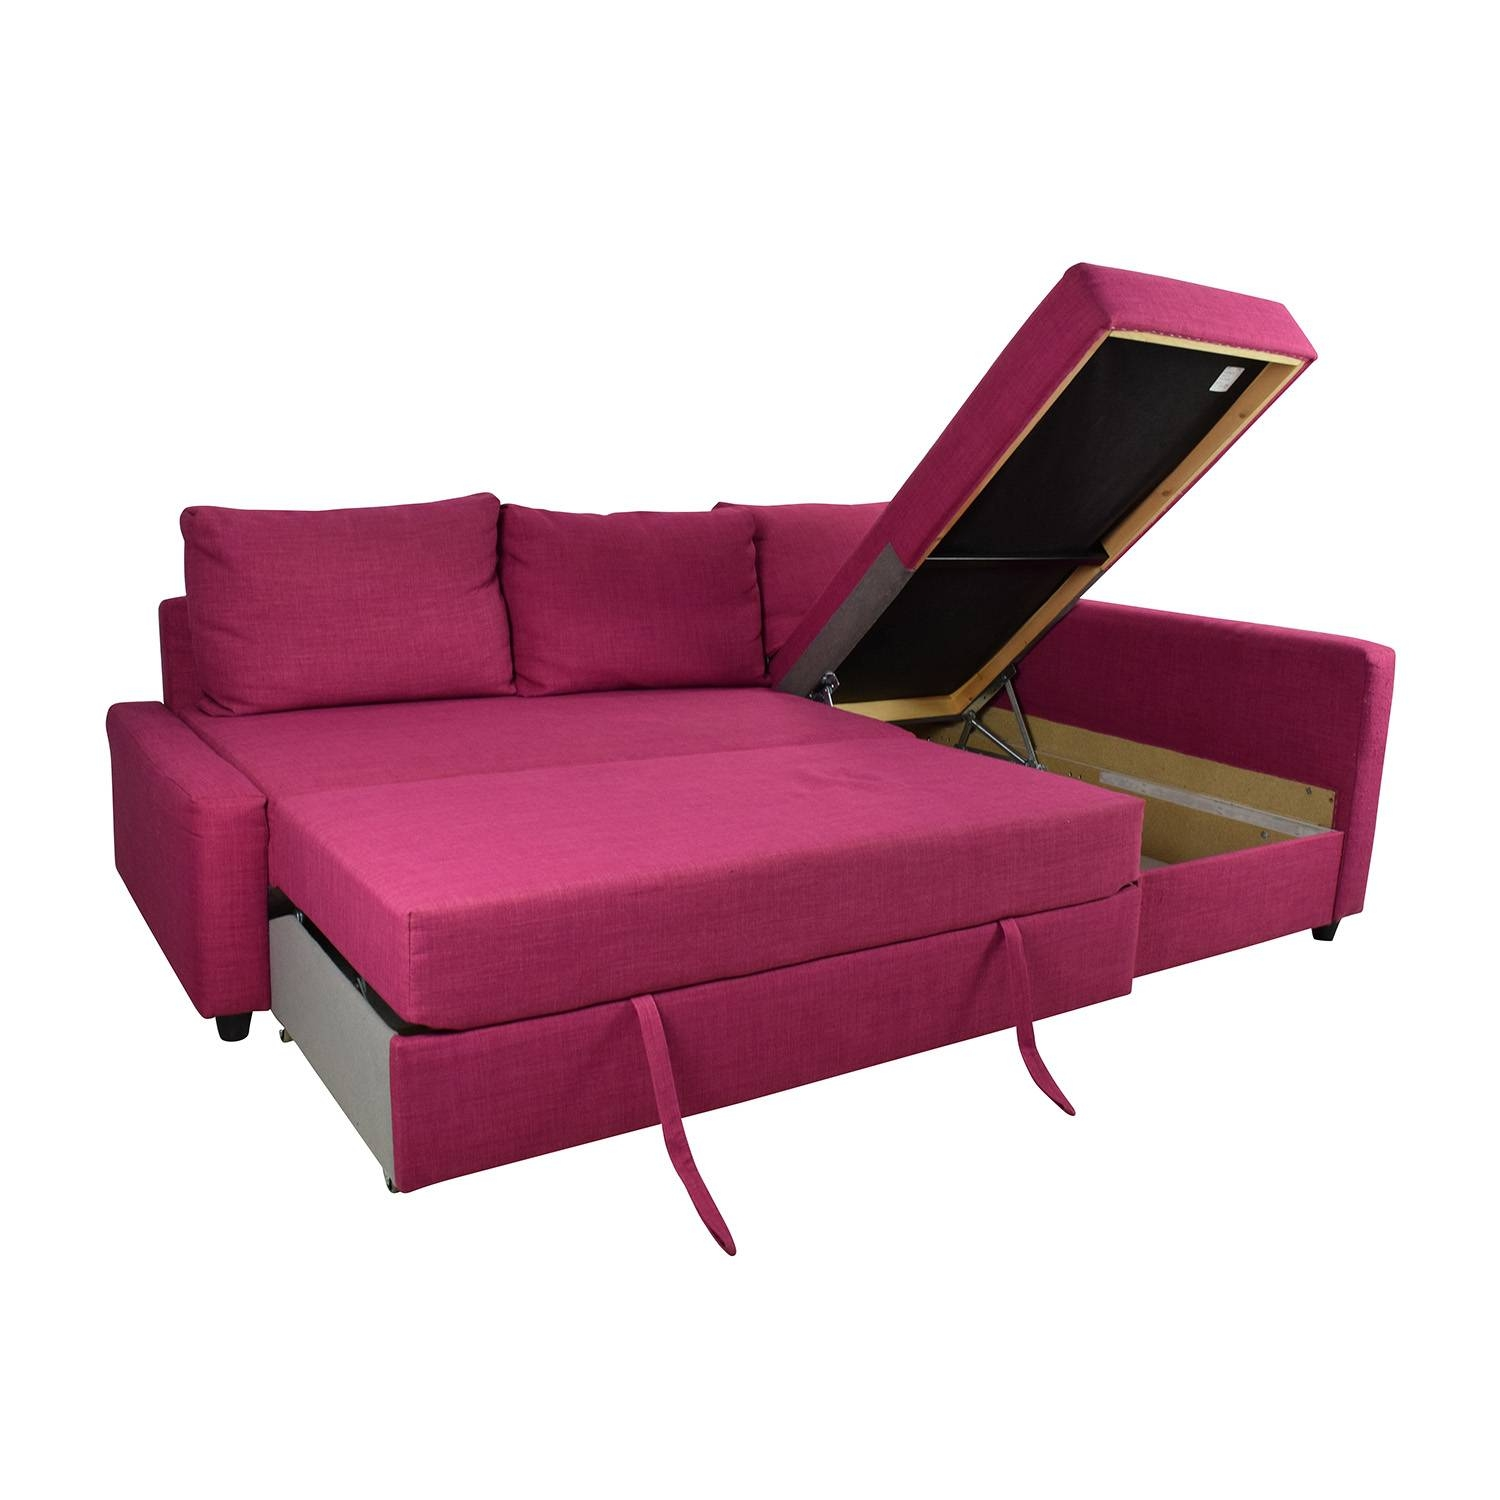 66% Off - Ikea Ikea Friheten Pink Sleeper Sofa / Sofas regarding Sleeper Sofa Sectional Ikea (Image 1 of 25)